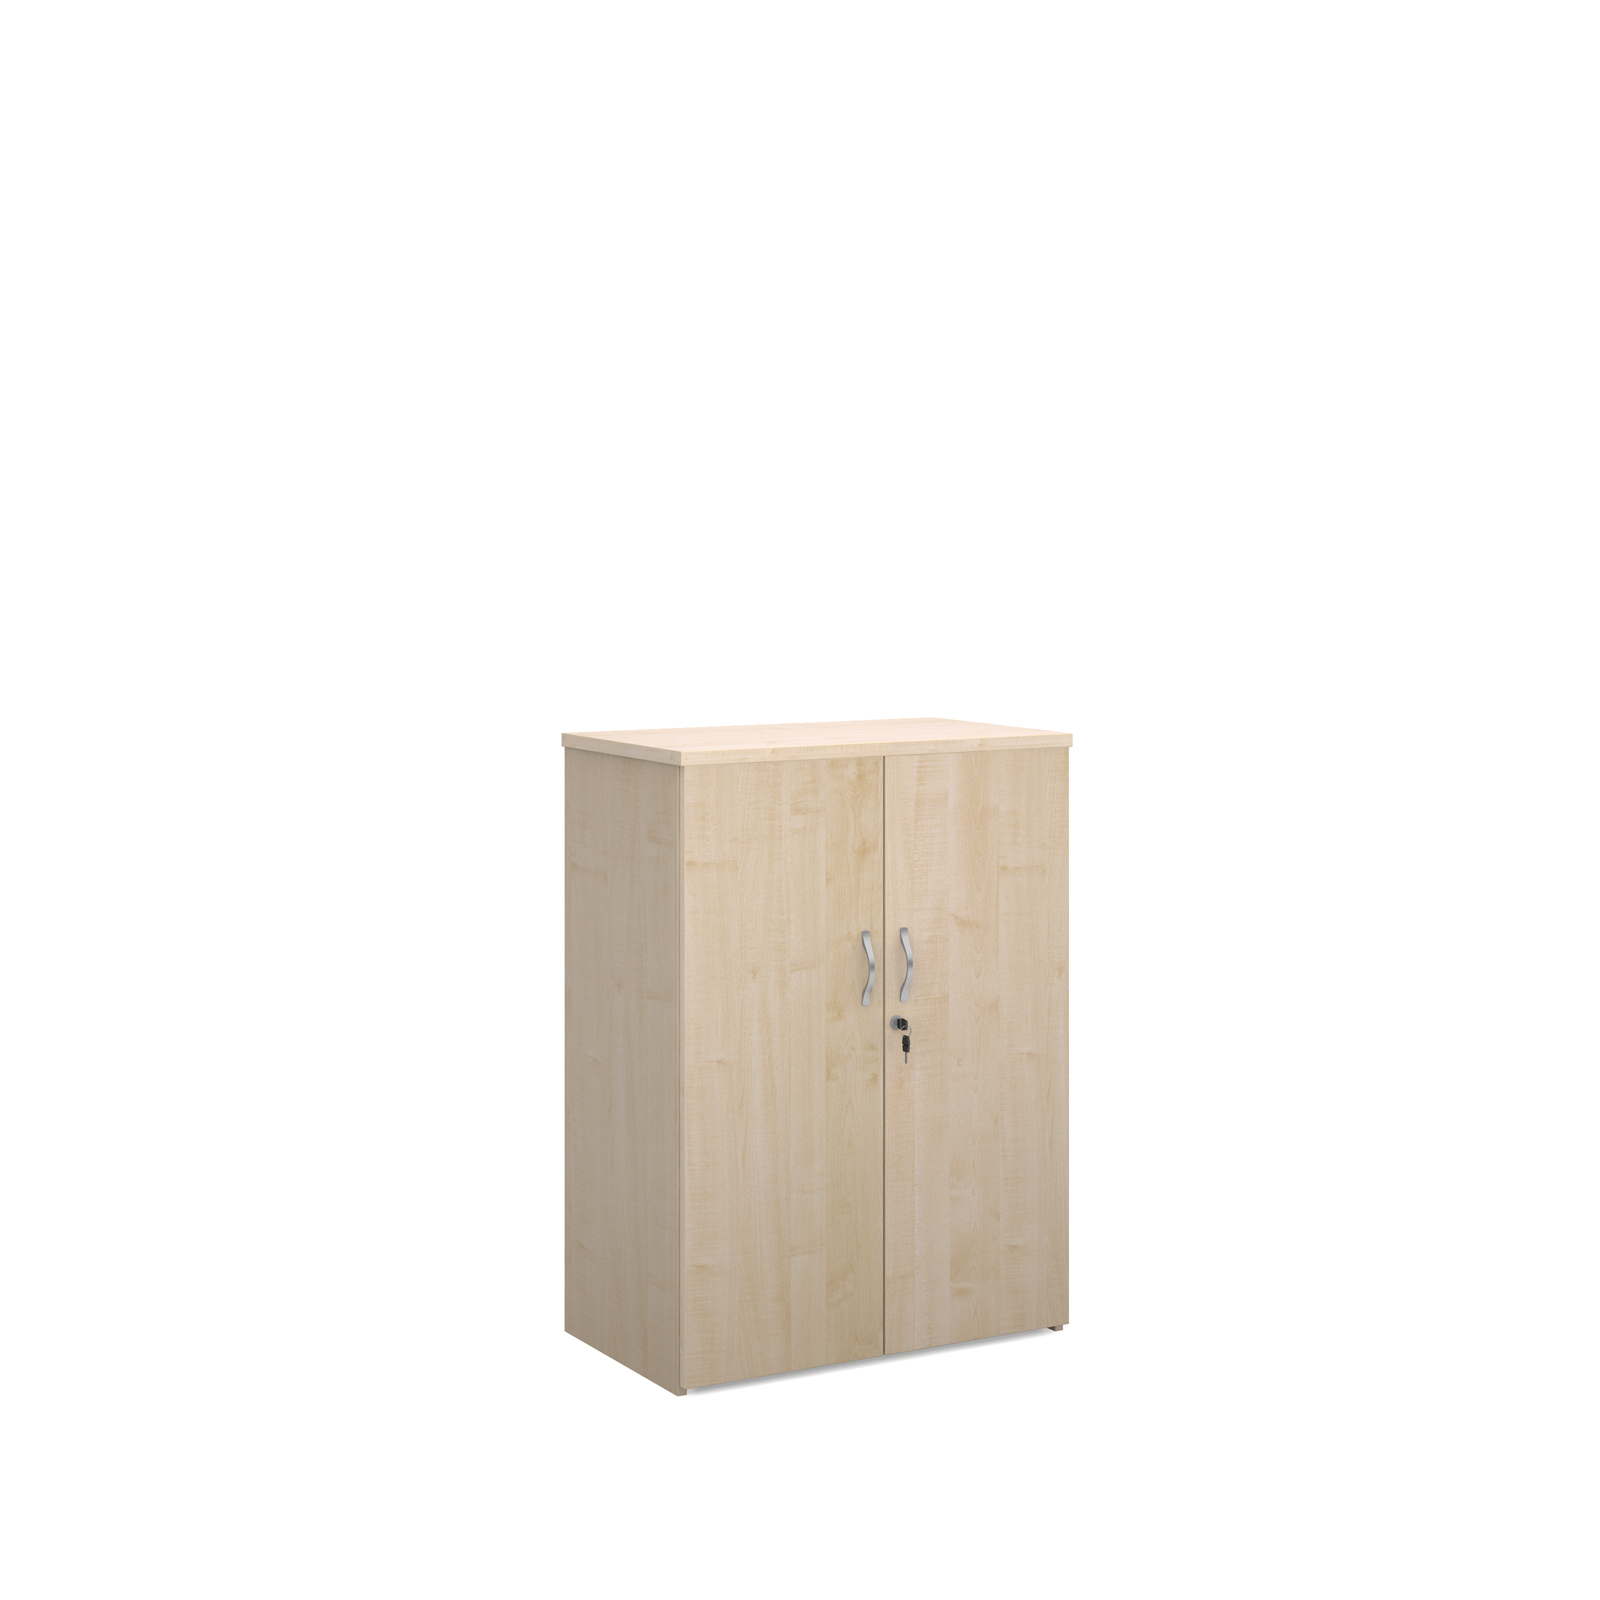 Universal double door cupboard 1090mm high with 2 shelves - maple